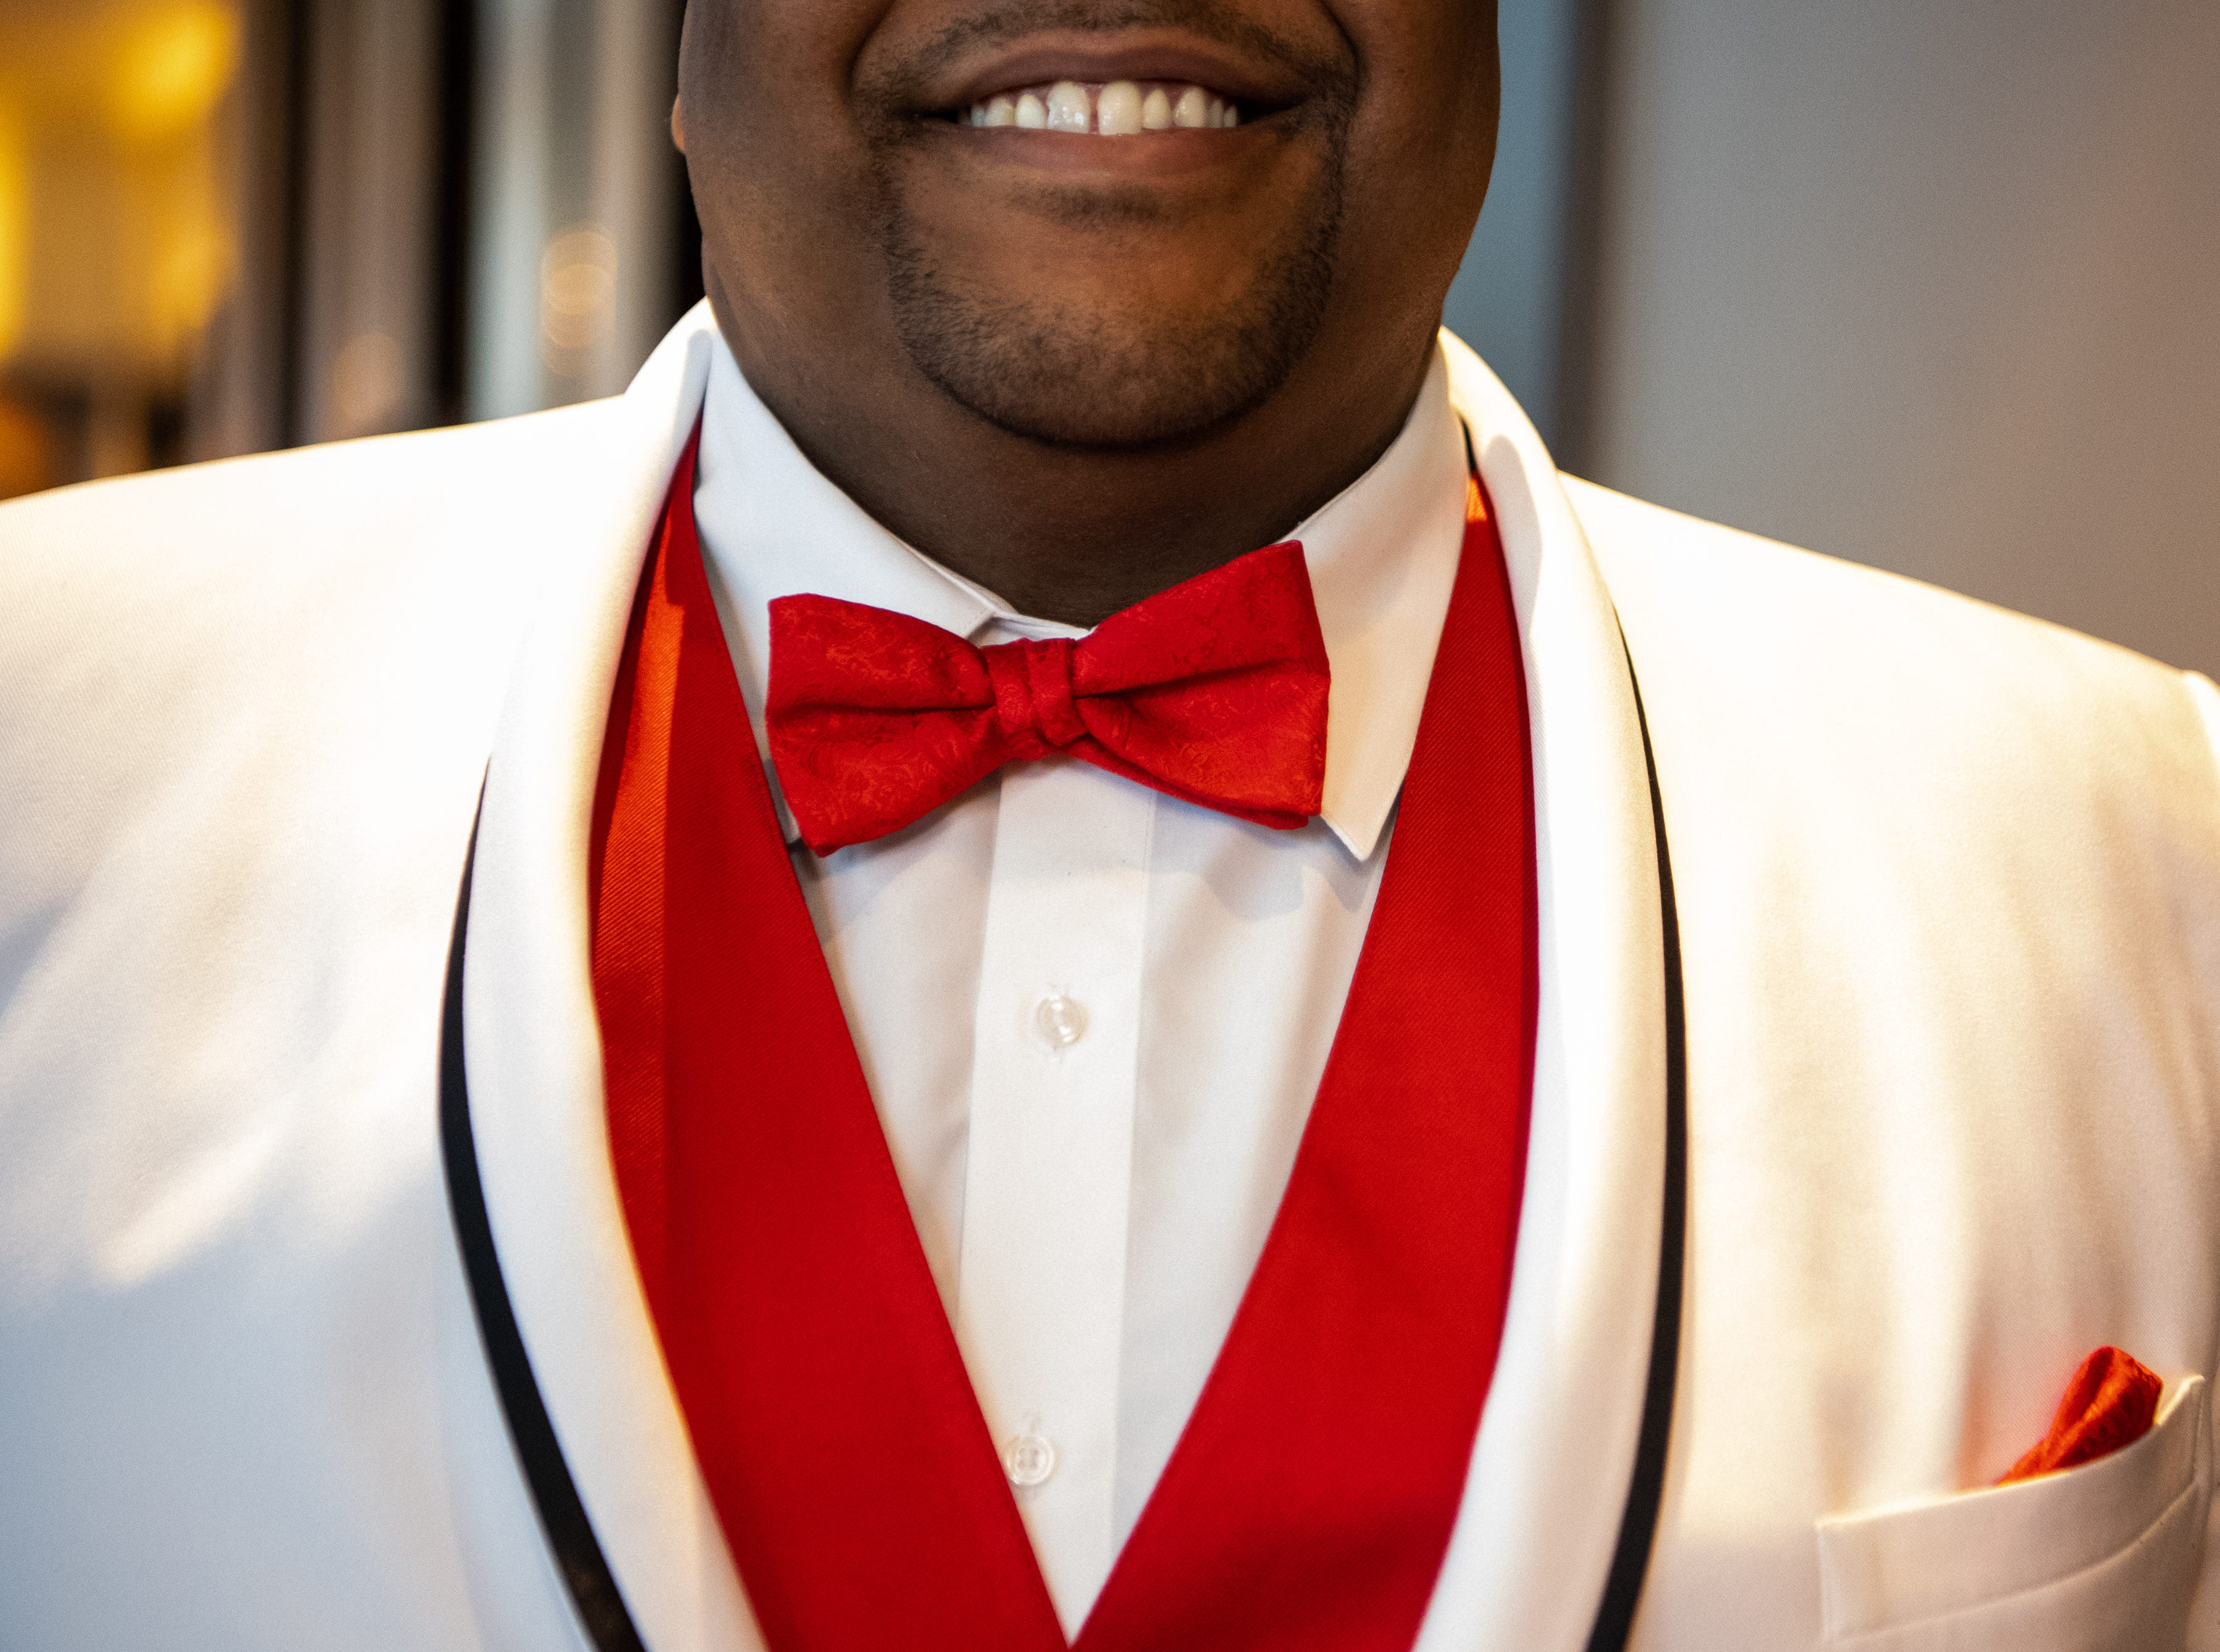 Lawrence Johnson wears APSU red during Austin Peay State University's annual Candlelight Ball at the Omni Nashville Hotel Saturday, March 16, 2019, in Nashville, Tenn.